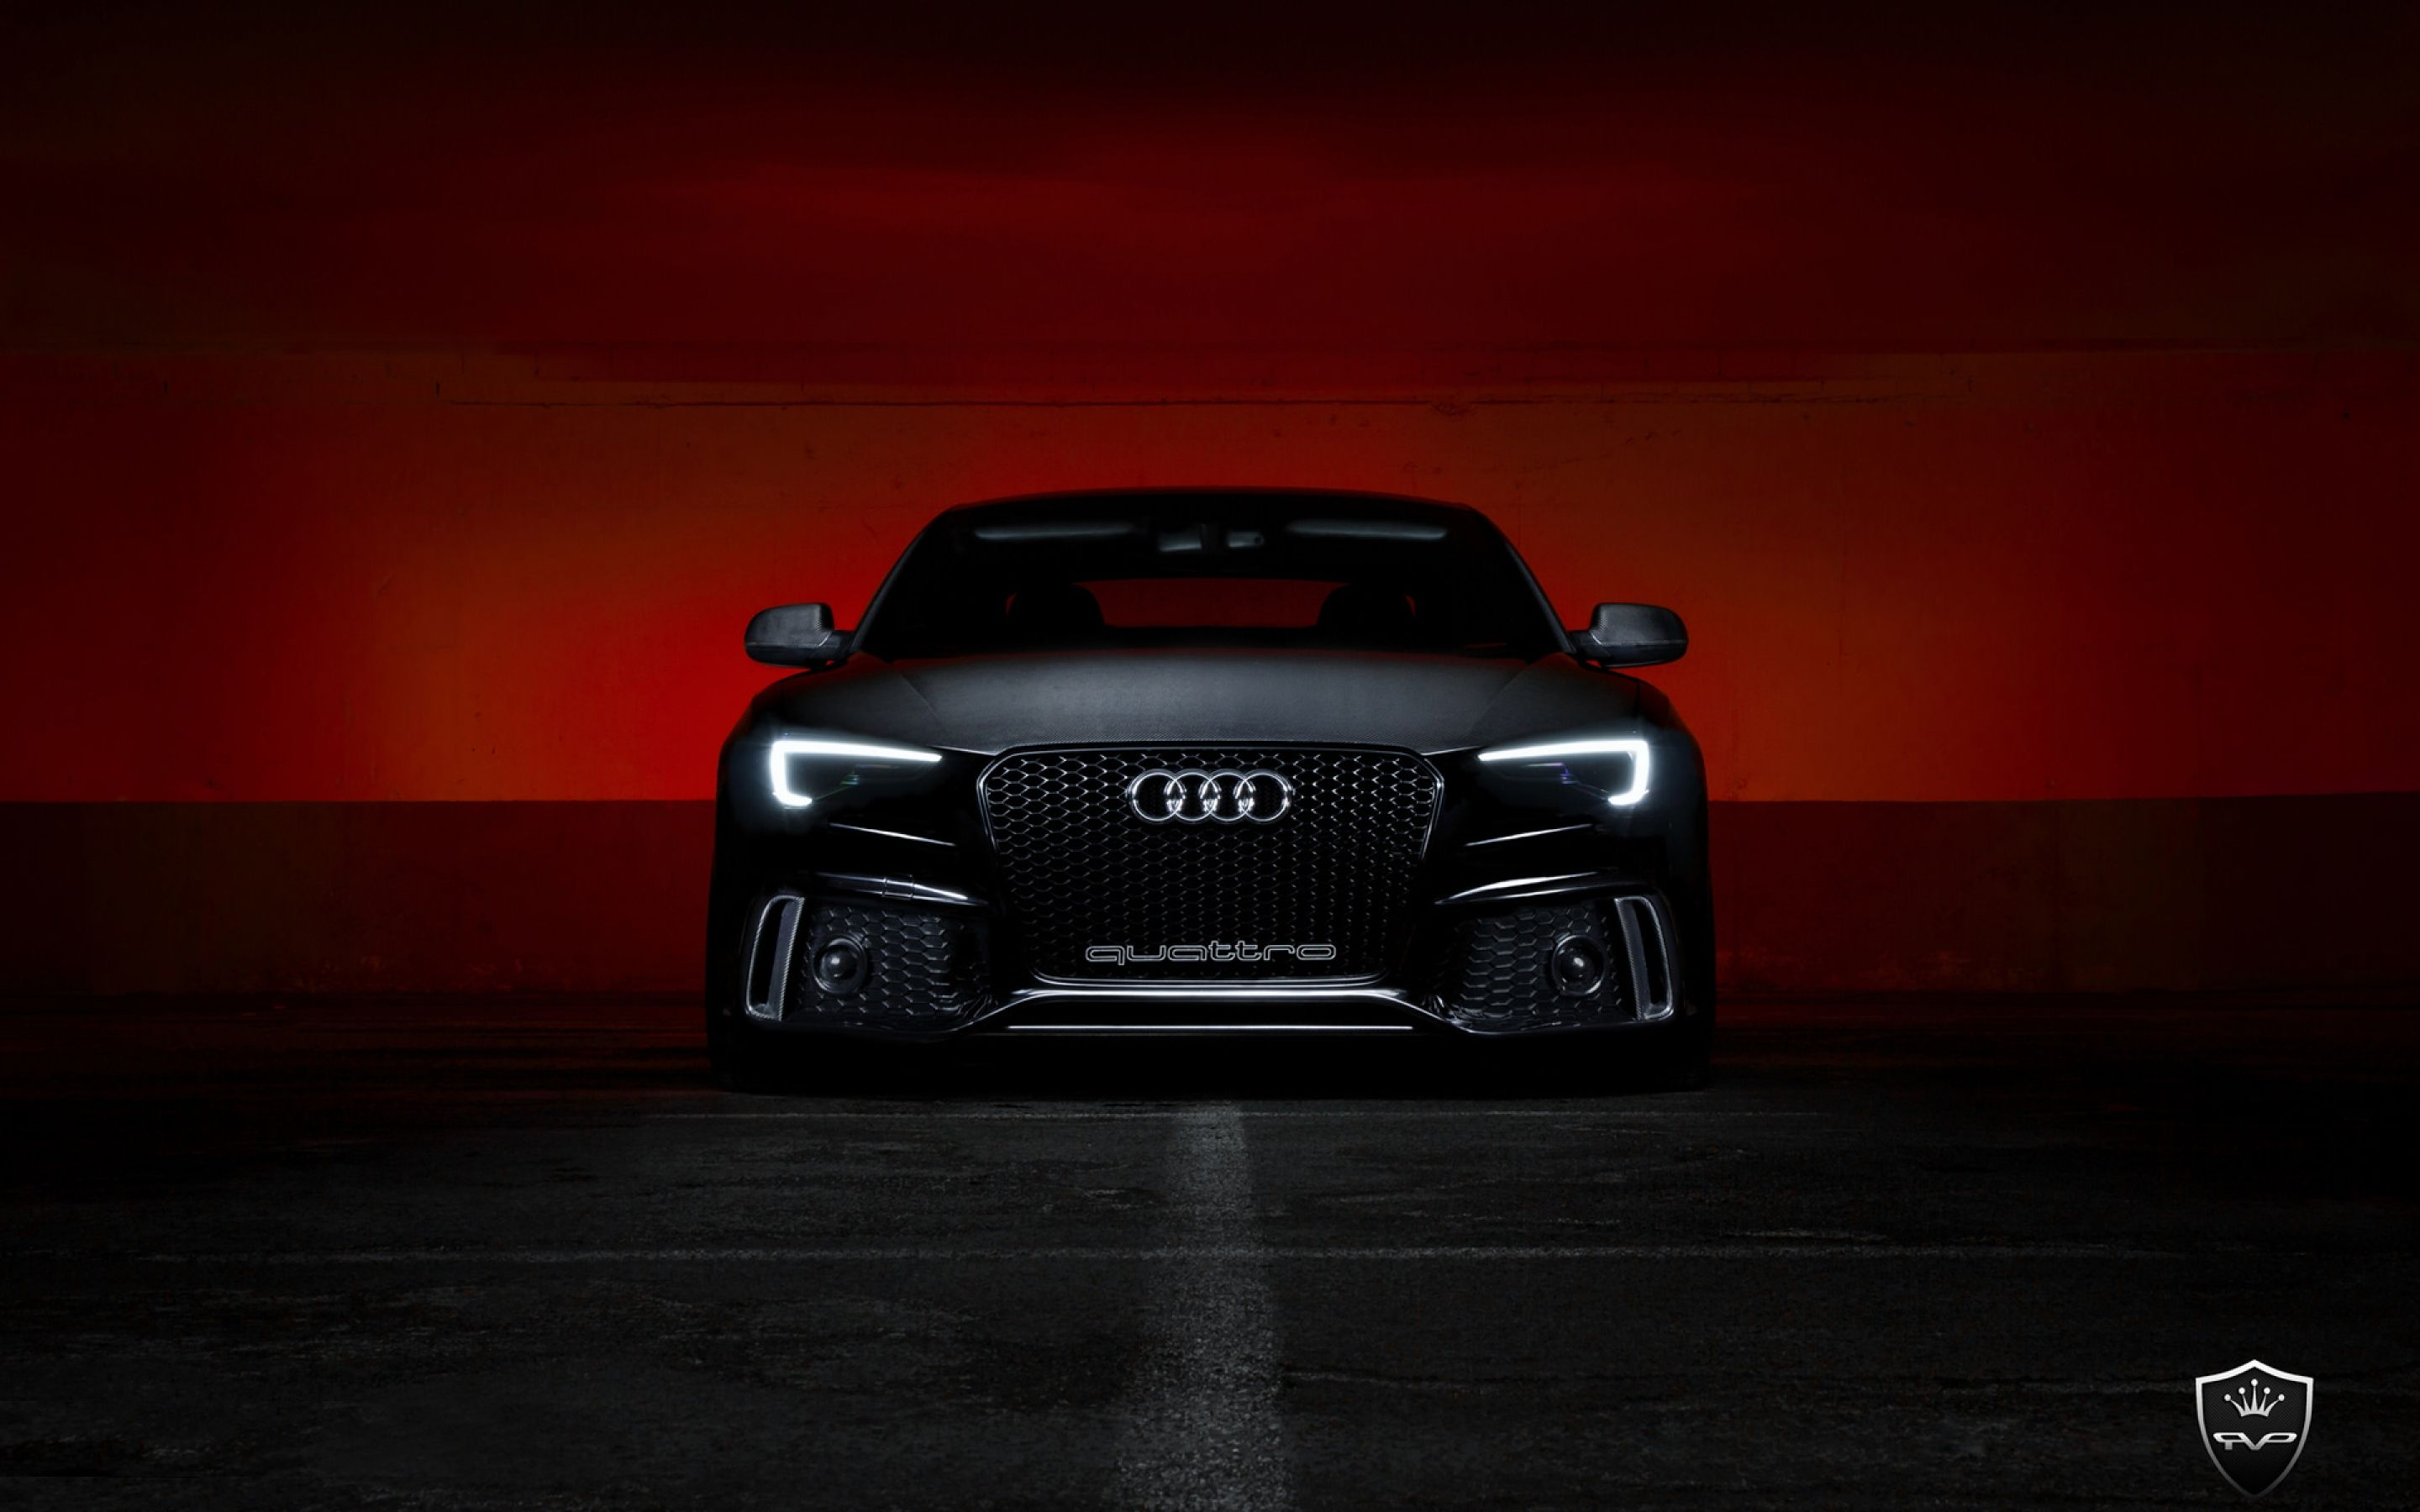 Car Black 4k Resolution 4k Wallpaper Automotive Wallpapers